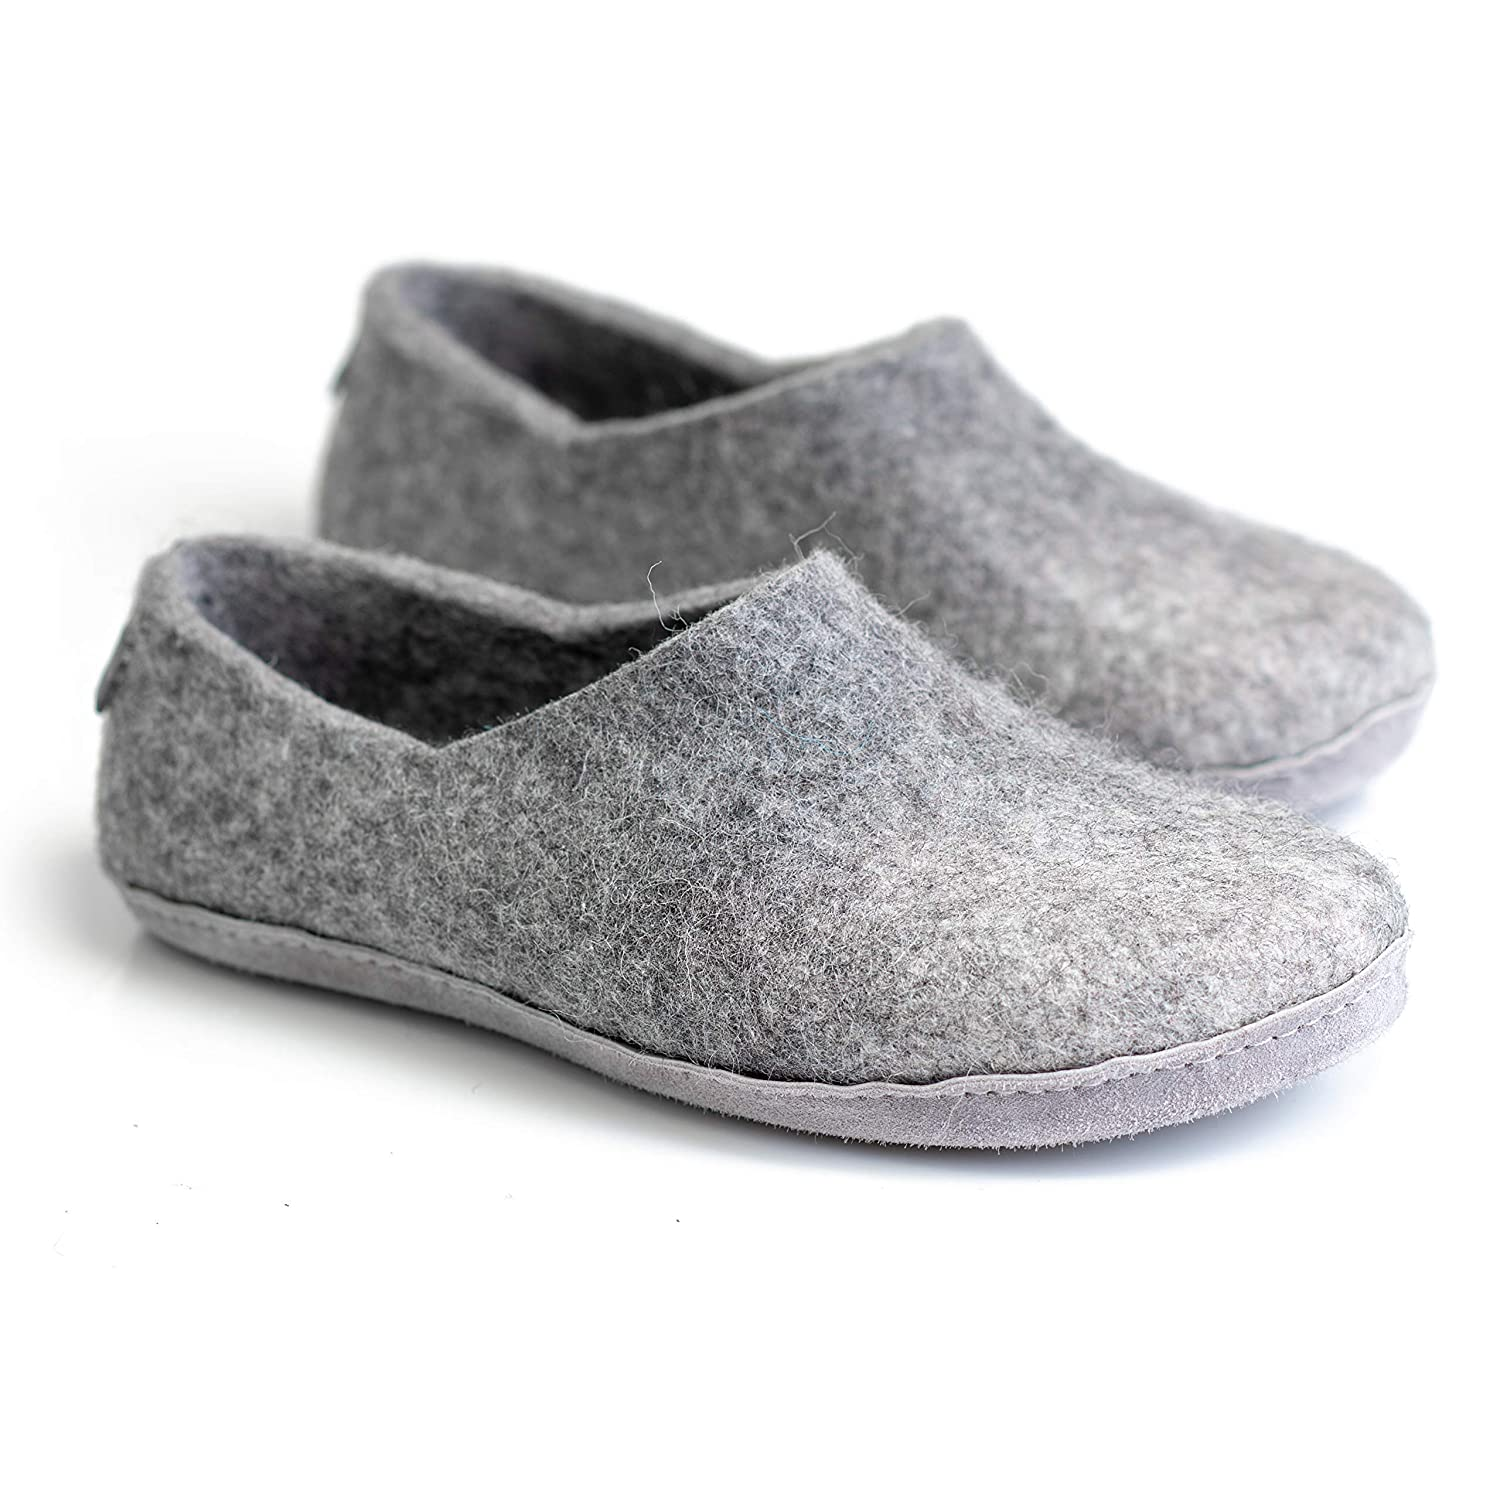 pick up special section 50% price Amazon.com: BureBure Felted Wool and Alpaca Clogs Slippers for Men ...